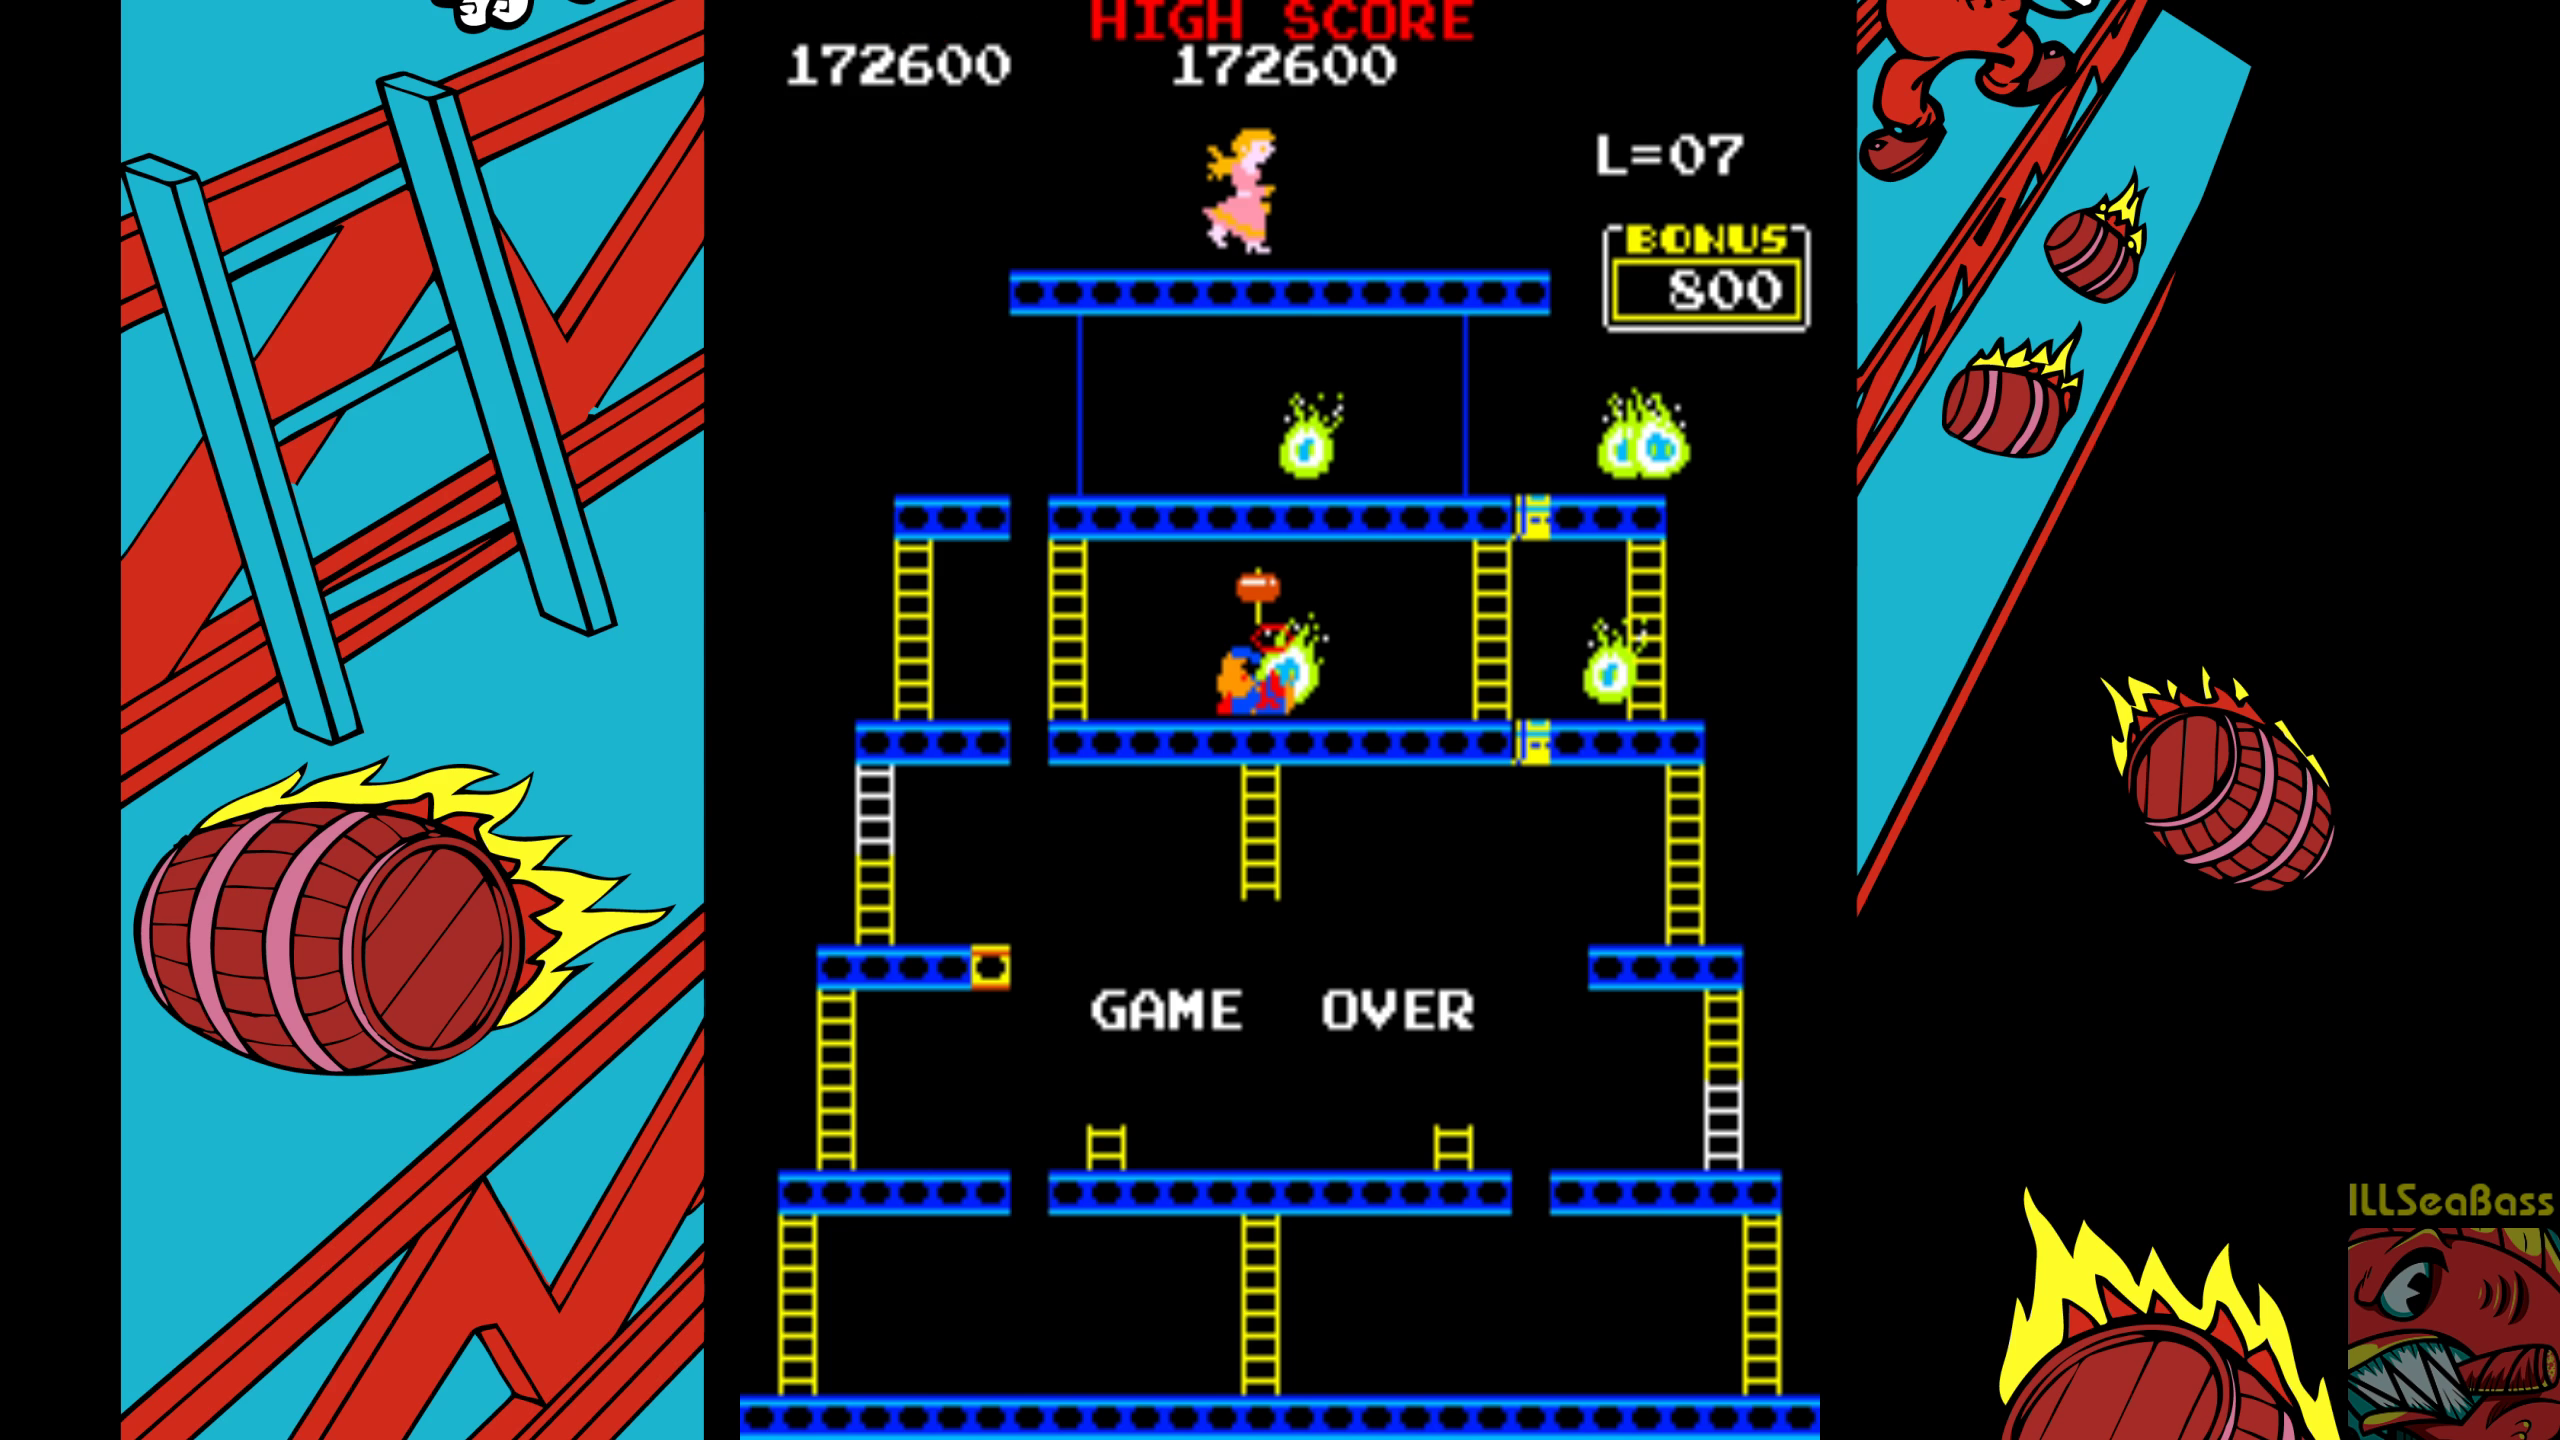 ILLSeaBass: Crazy Kong (Arcade Emulated / M.A.M.E.) 172,600 points on 2018-07-22 02:04:14